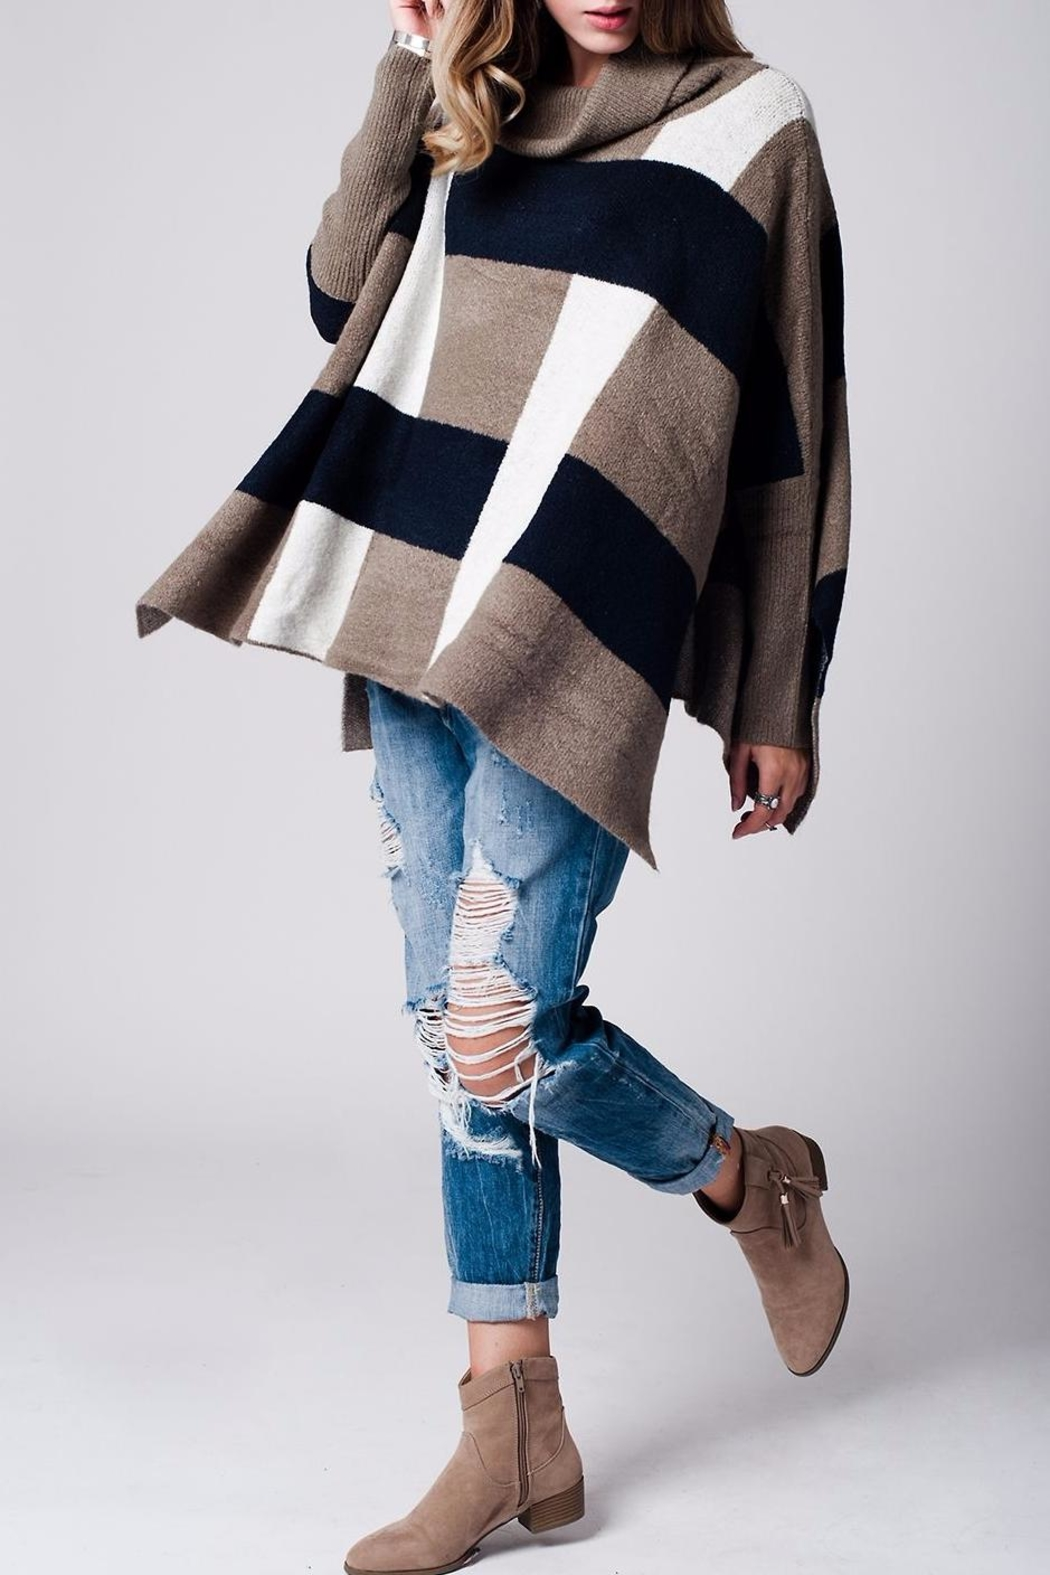 Q2 Plaid Poncho Sweater from San Francisco by Marvy Fashion